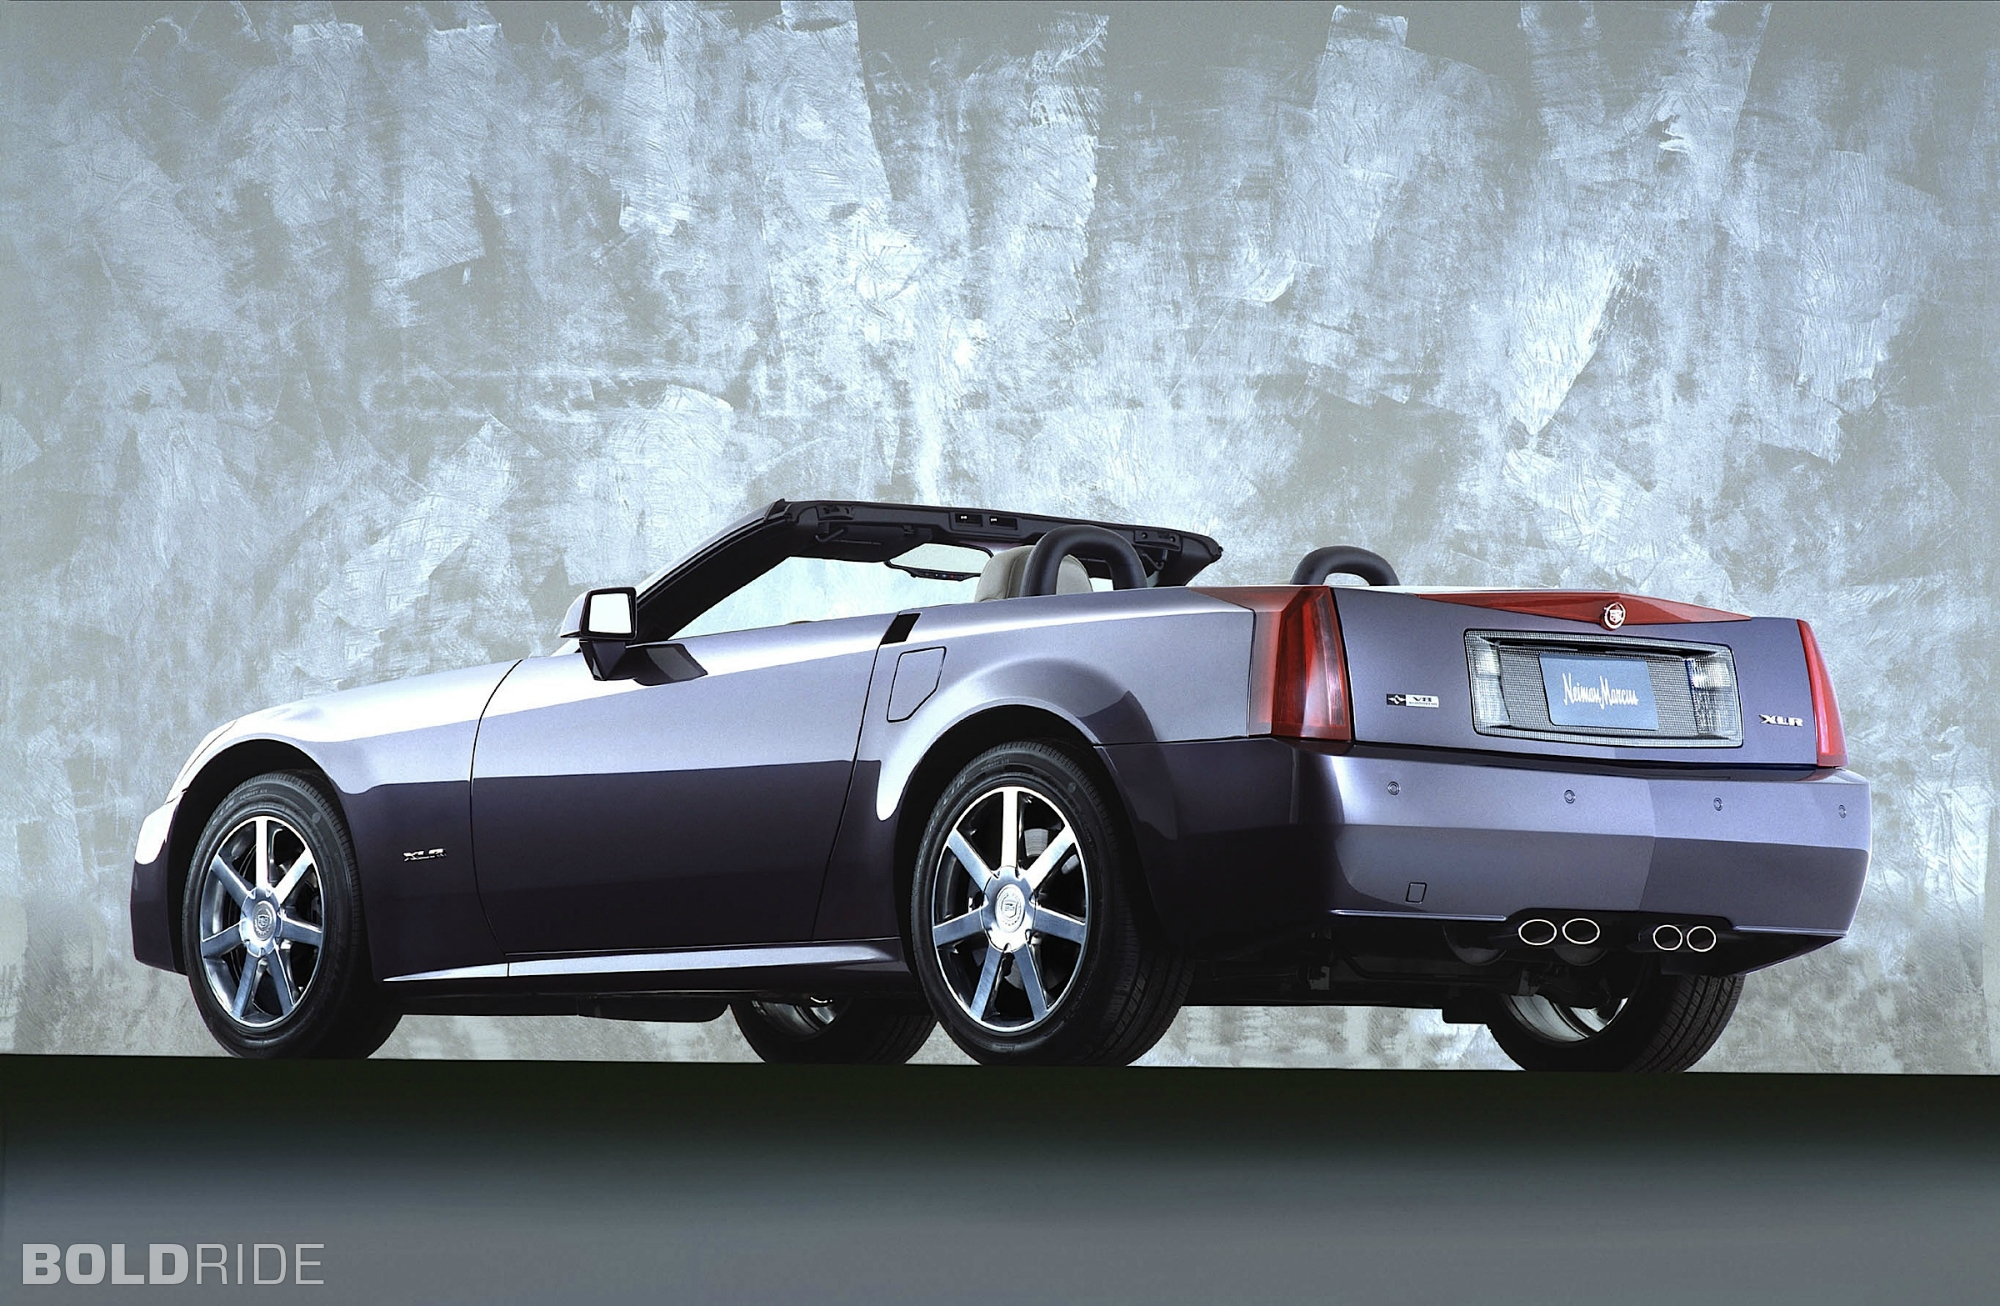 hight resolution of cadillac xlr wiring diagram wiring diagram toolbox 2004 cadillac xlr wiring diagram